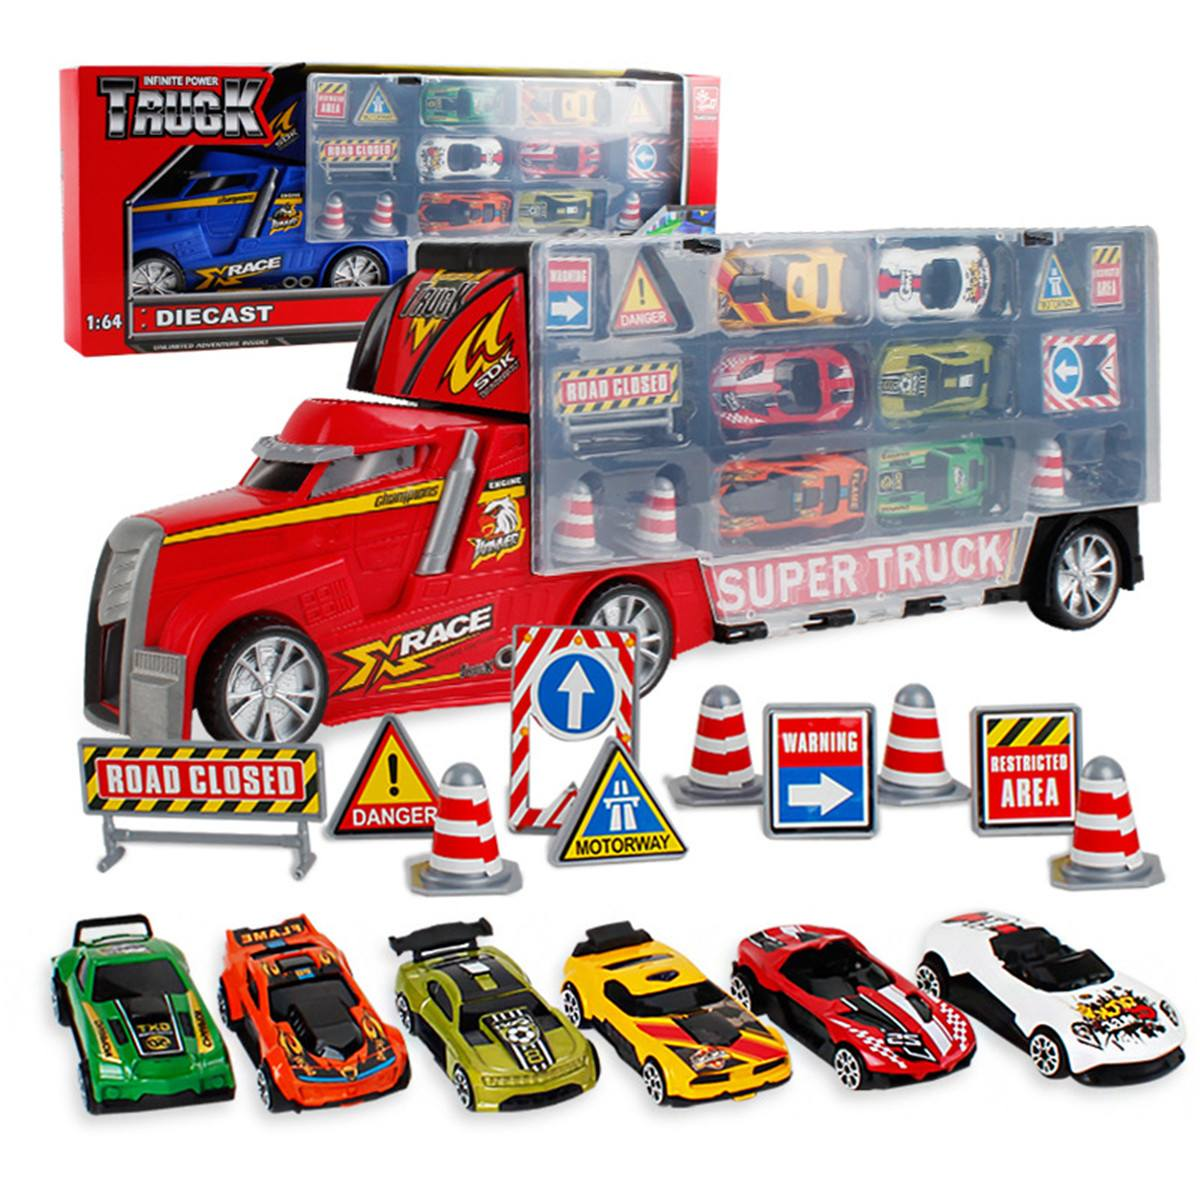 Diecast Metal Alloy Cars Metal Truck <font><b>Hauler</b></font> with 6 Small Cars Car toy kids toys for children boys toys car model bus image